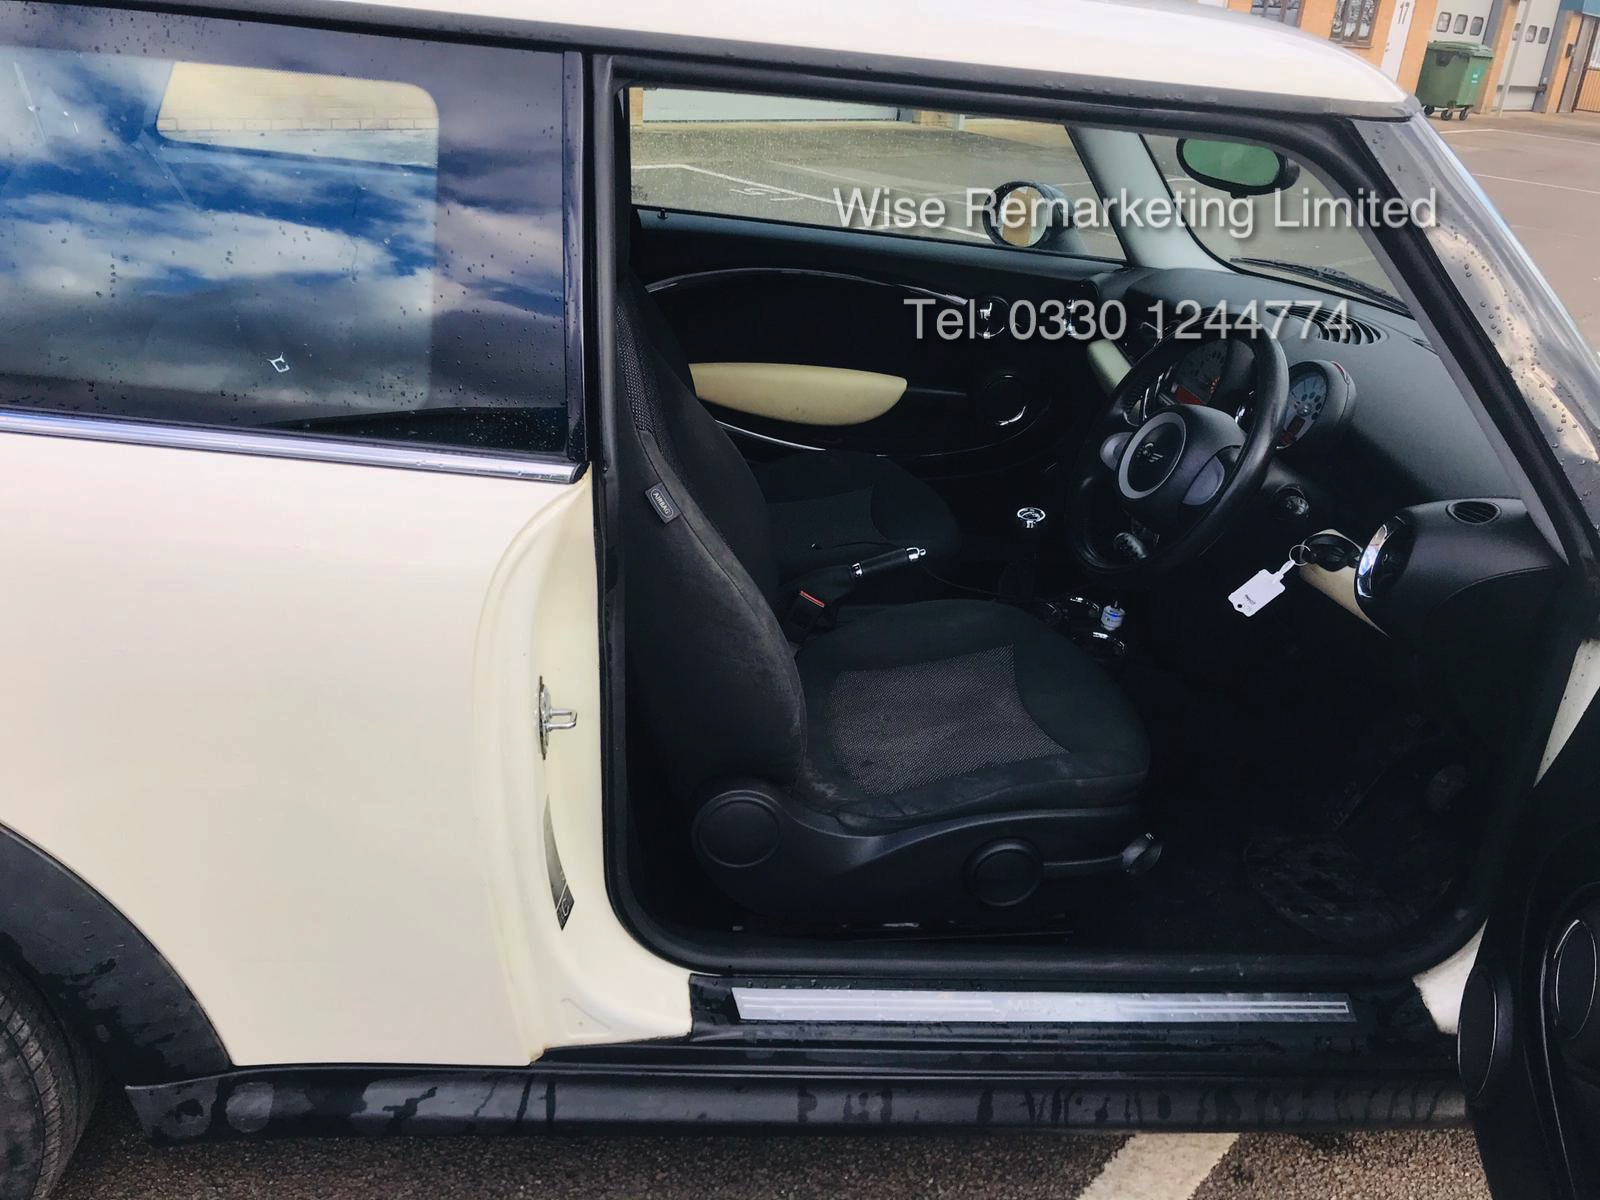 (RESERVE MET) Mini Cooper 1.4l One - 2008 Model - Service History - Air Con - White - Image 21 of 23